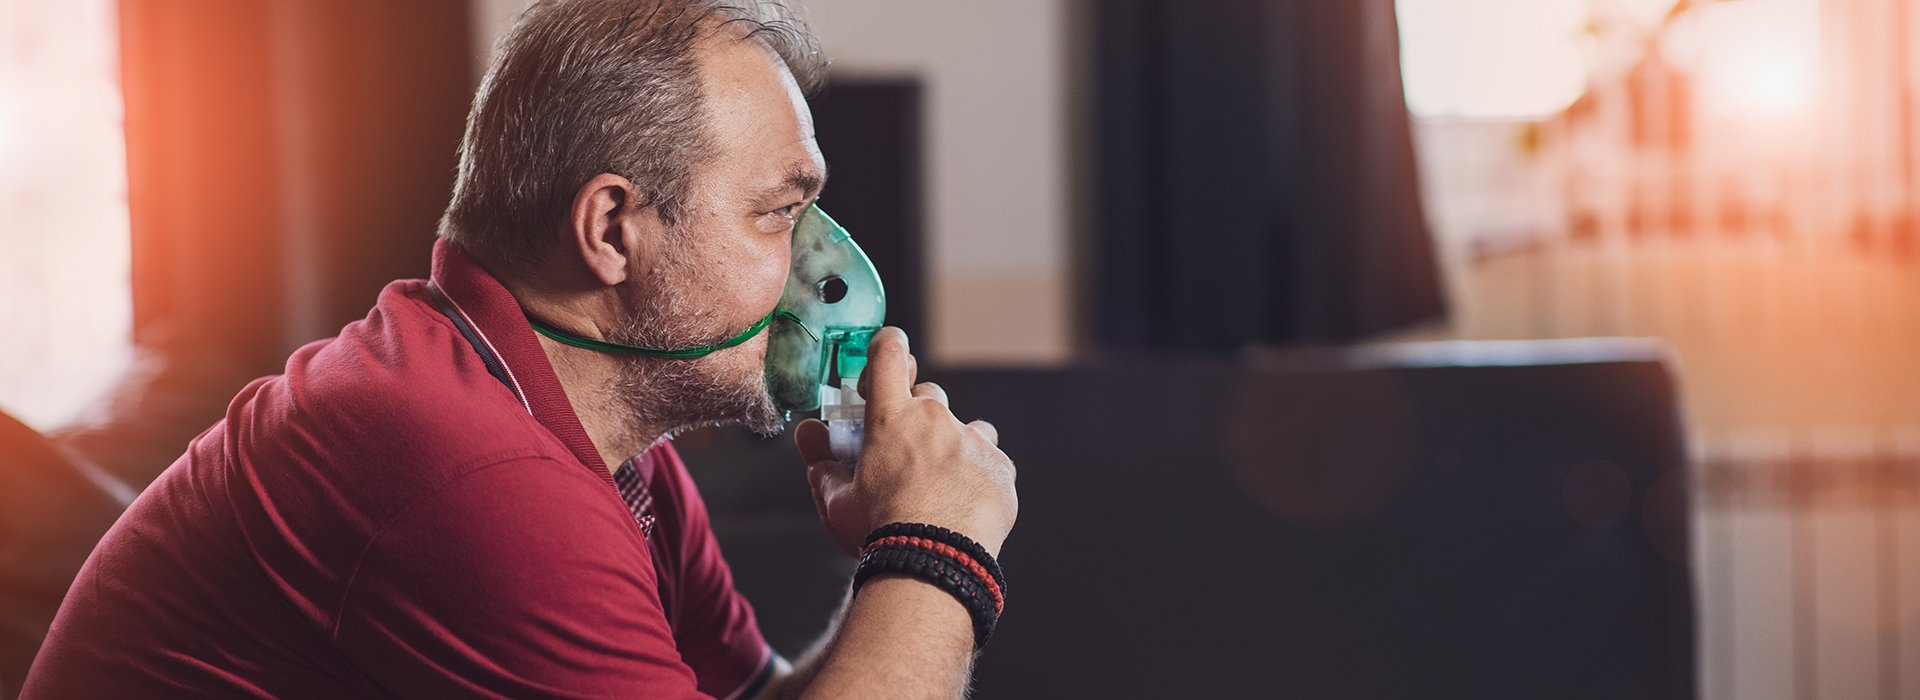 Man sitting at home wearing an oxygen mask.